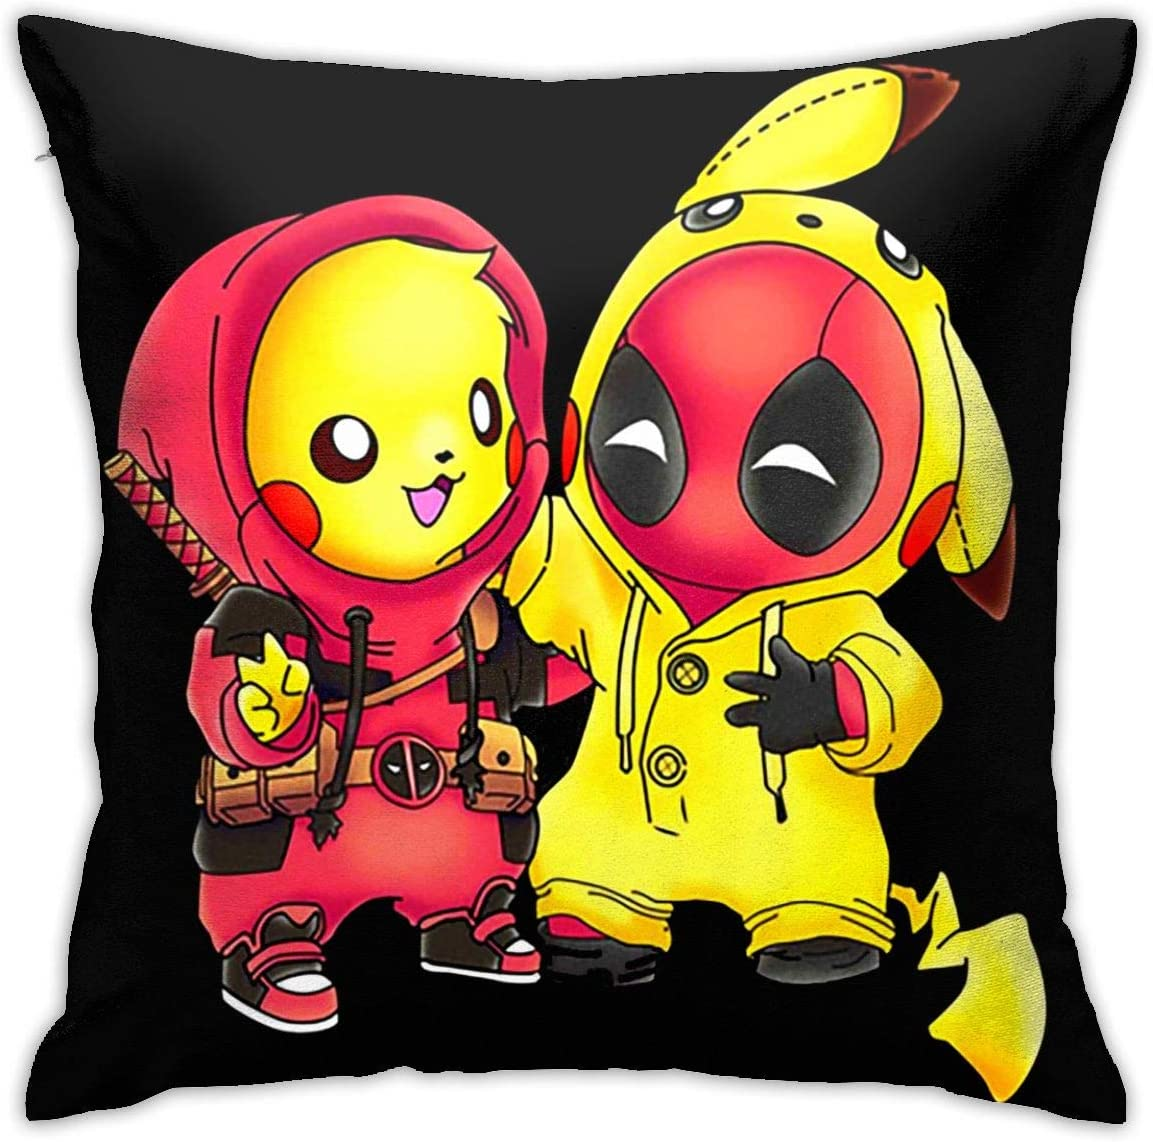 SUNERLADY Pikachu Pet Monster and Deadpool Pikapool Throw Pillow Cover Decorative Pillowcase Creative Home Decor Pillowcases 18x18 Inches